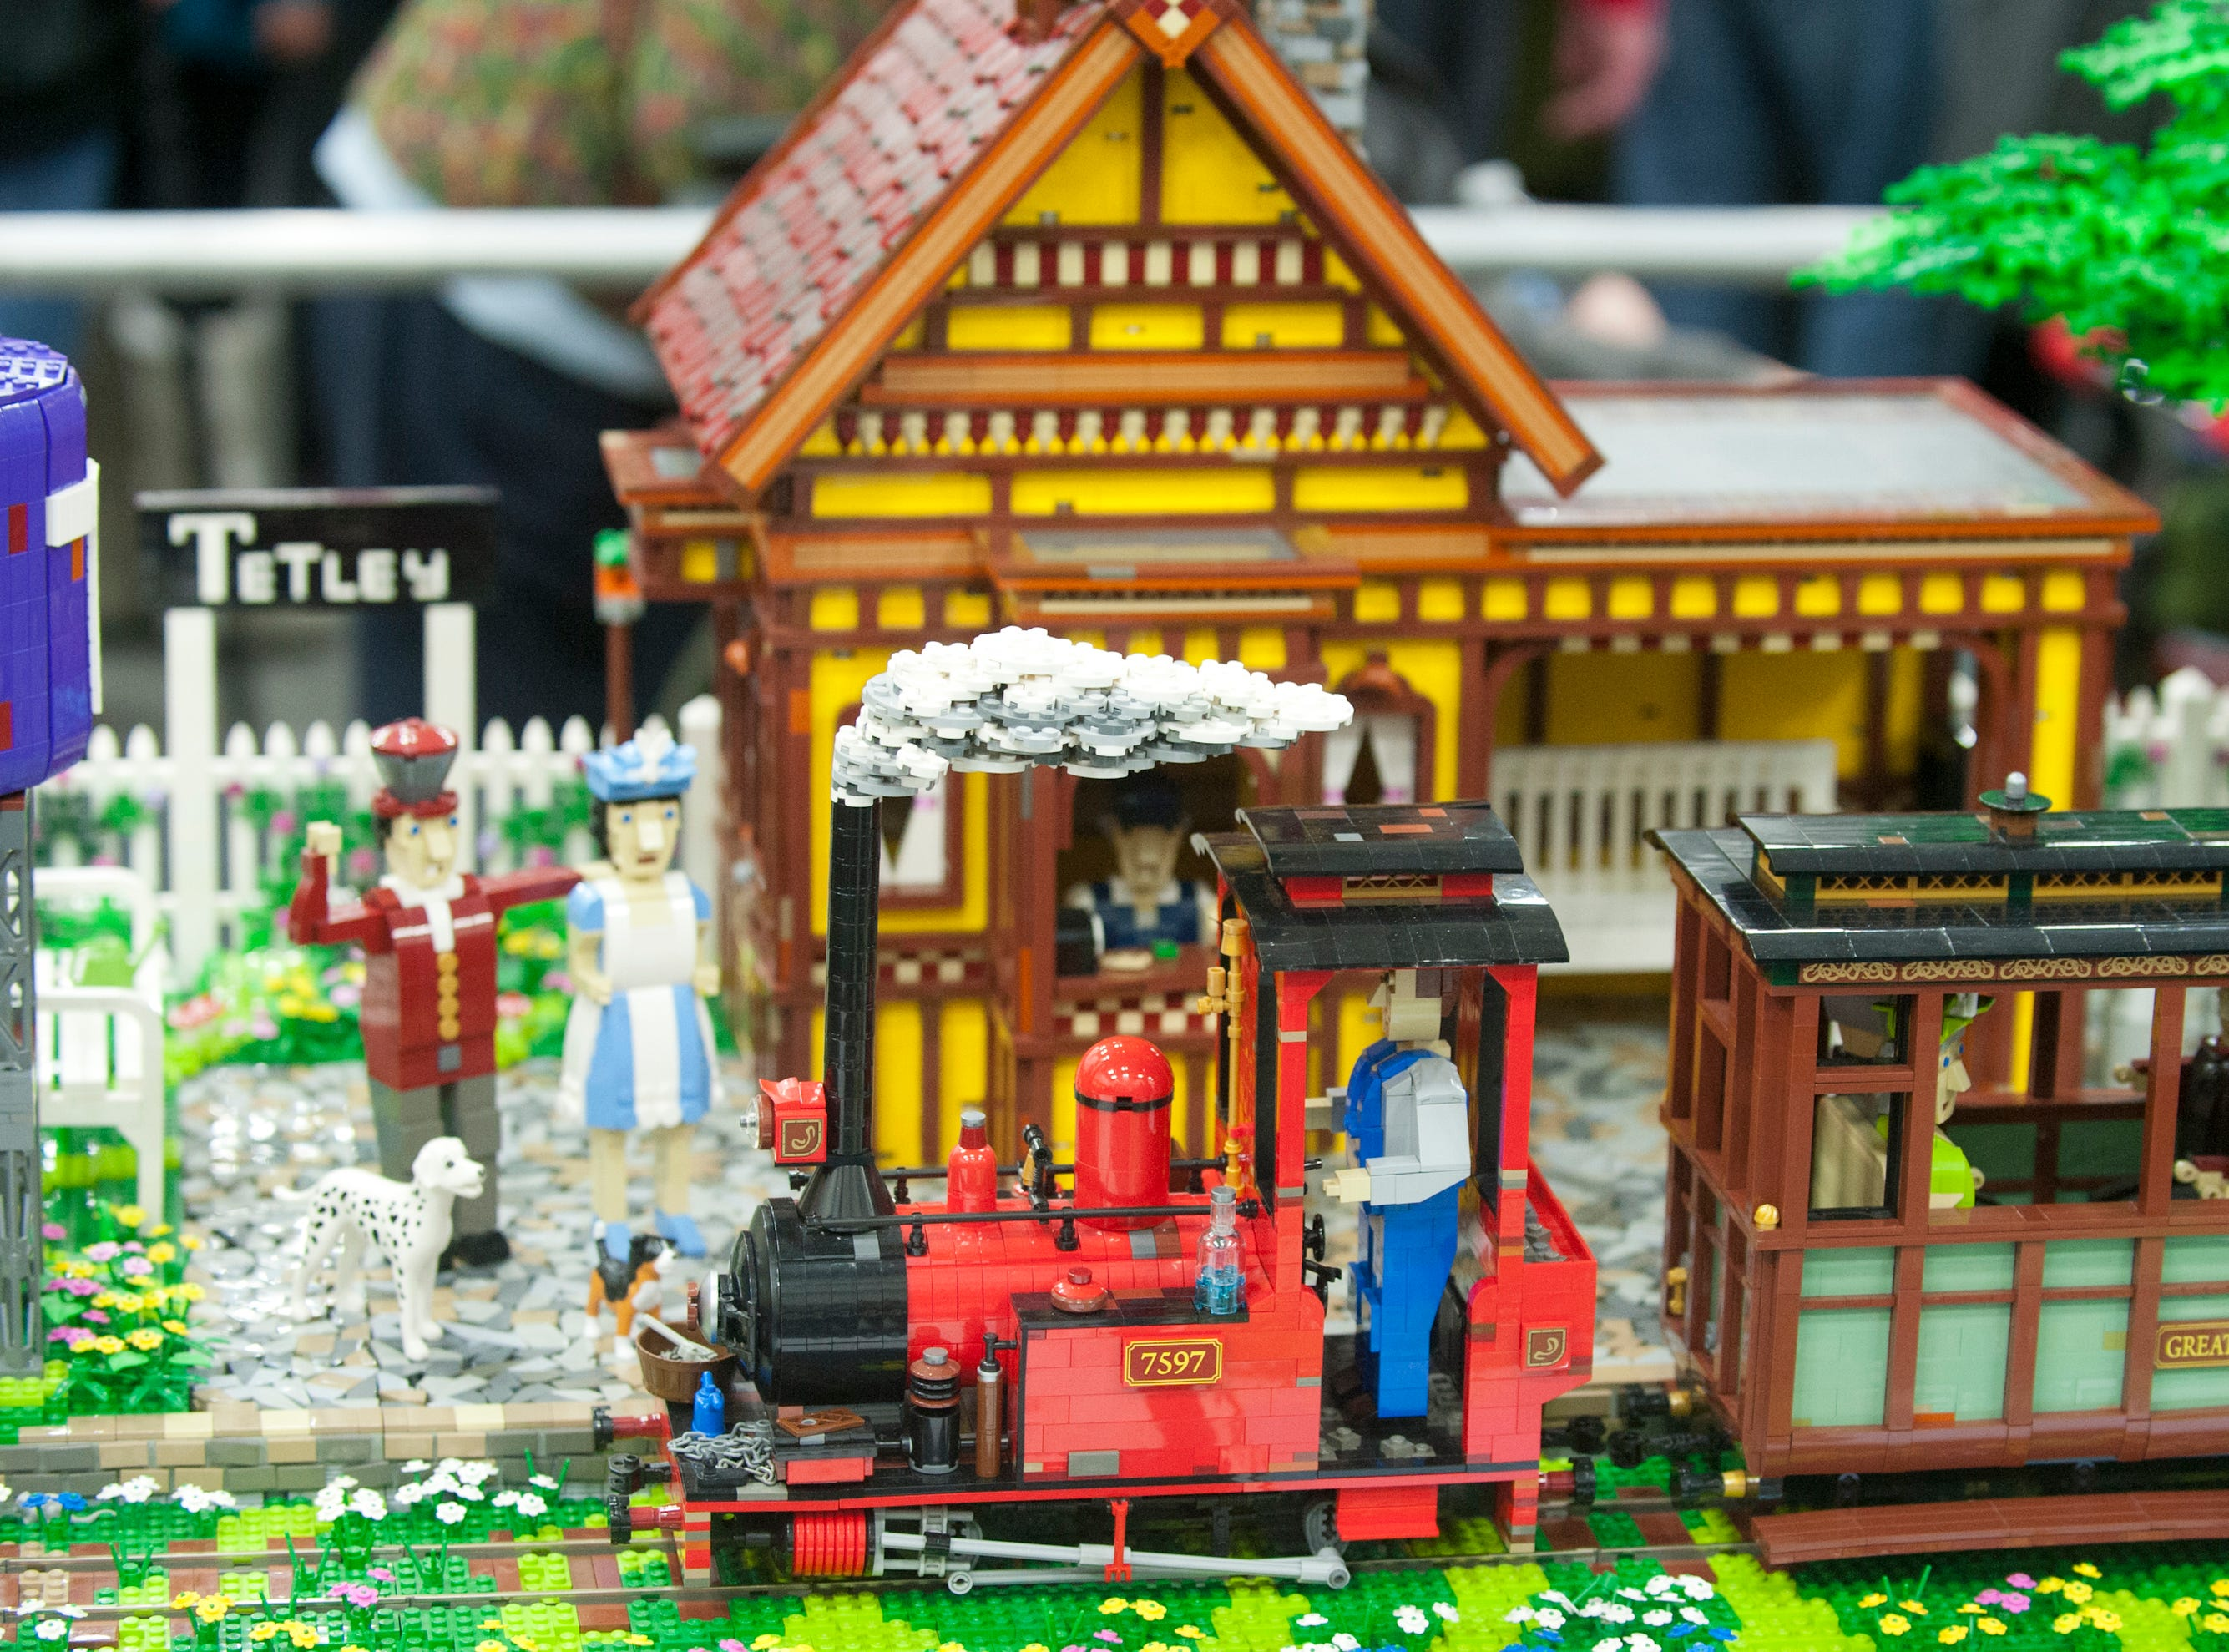 Sunday Afternoon Tea Train to Tetley at Tetly by artist Paul Hetherington shows a smoke-puffing train pulling into the station at Tetley, a village. The train, its engineer and passengers, station and people at the station are all made of Legos. It took Hetherington 16,700 bricks and 170 hours to create the fun scene.19 January 2019